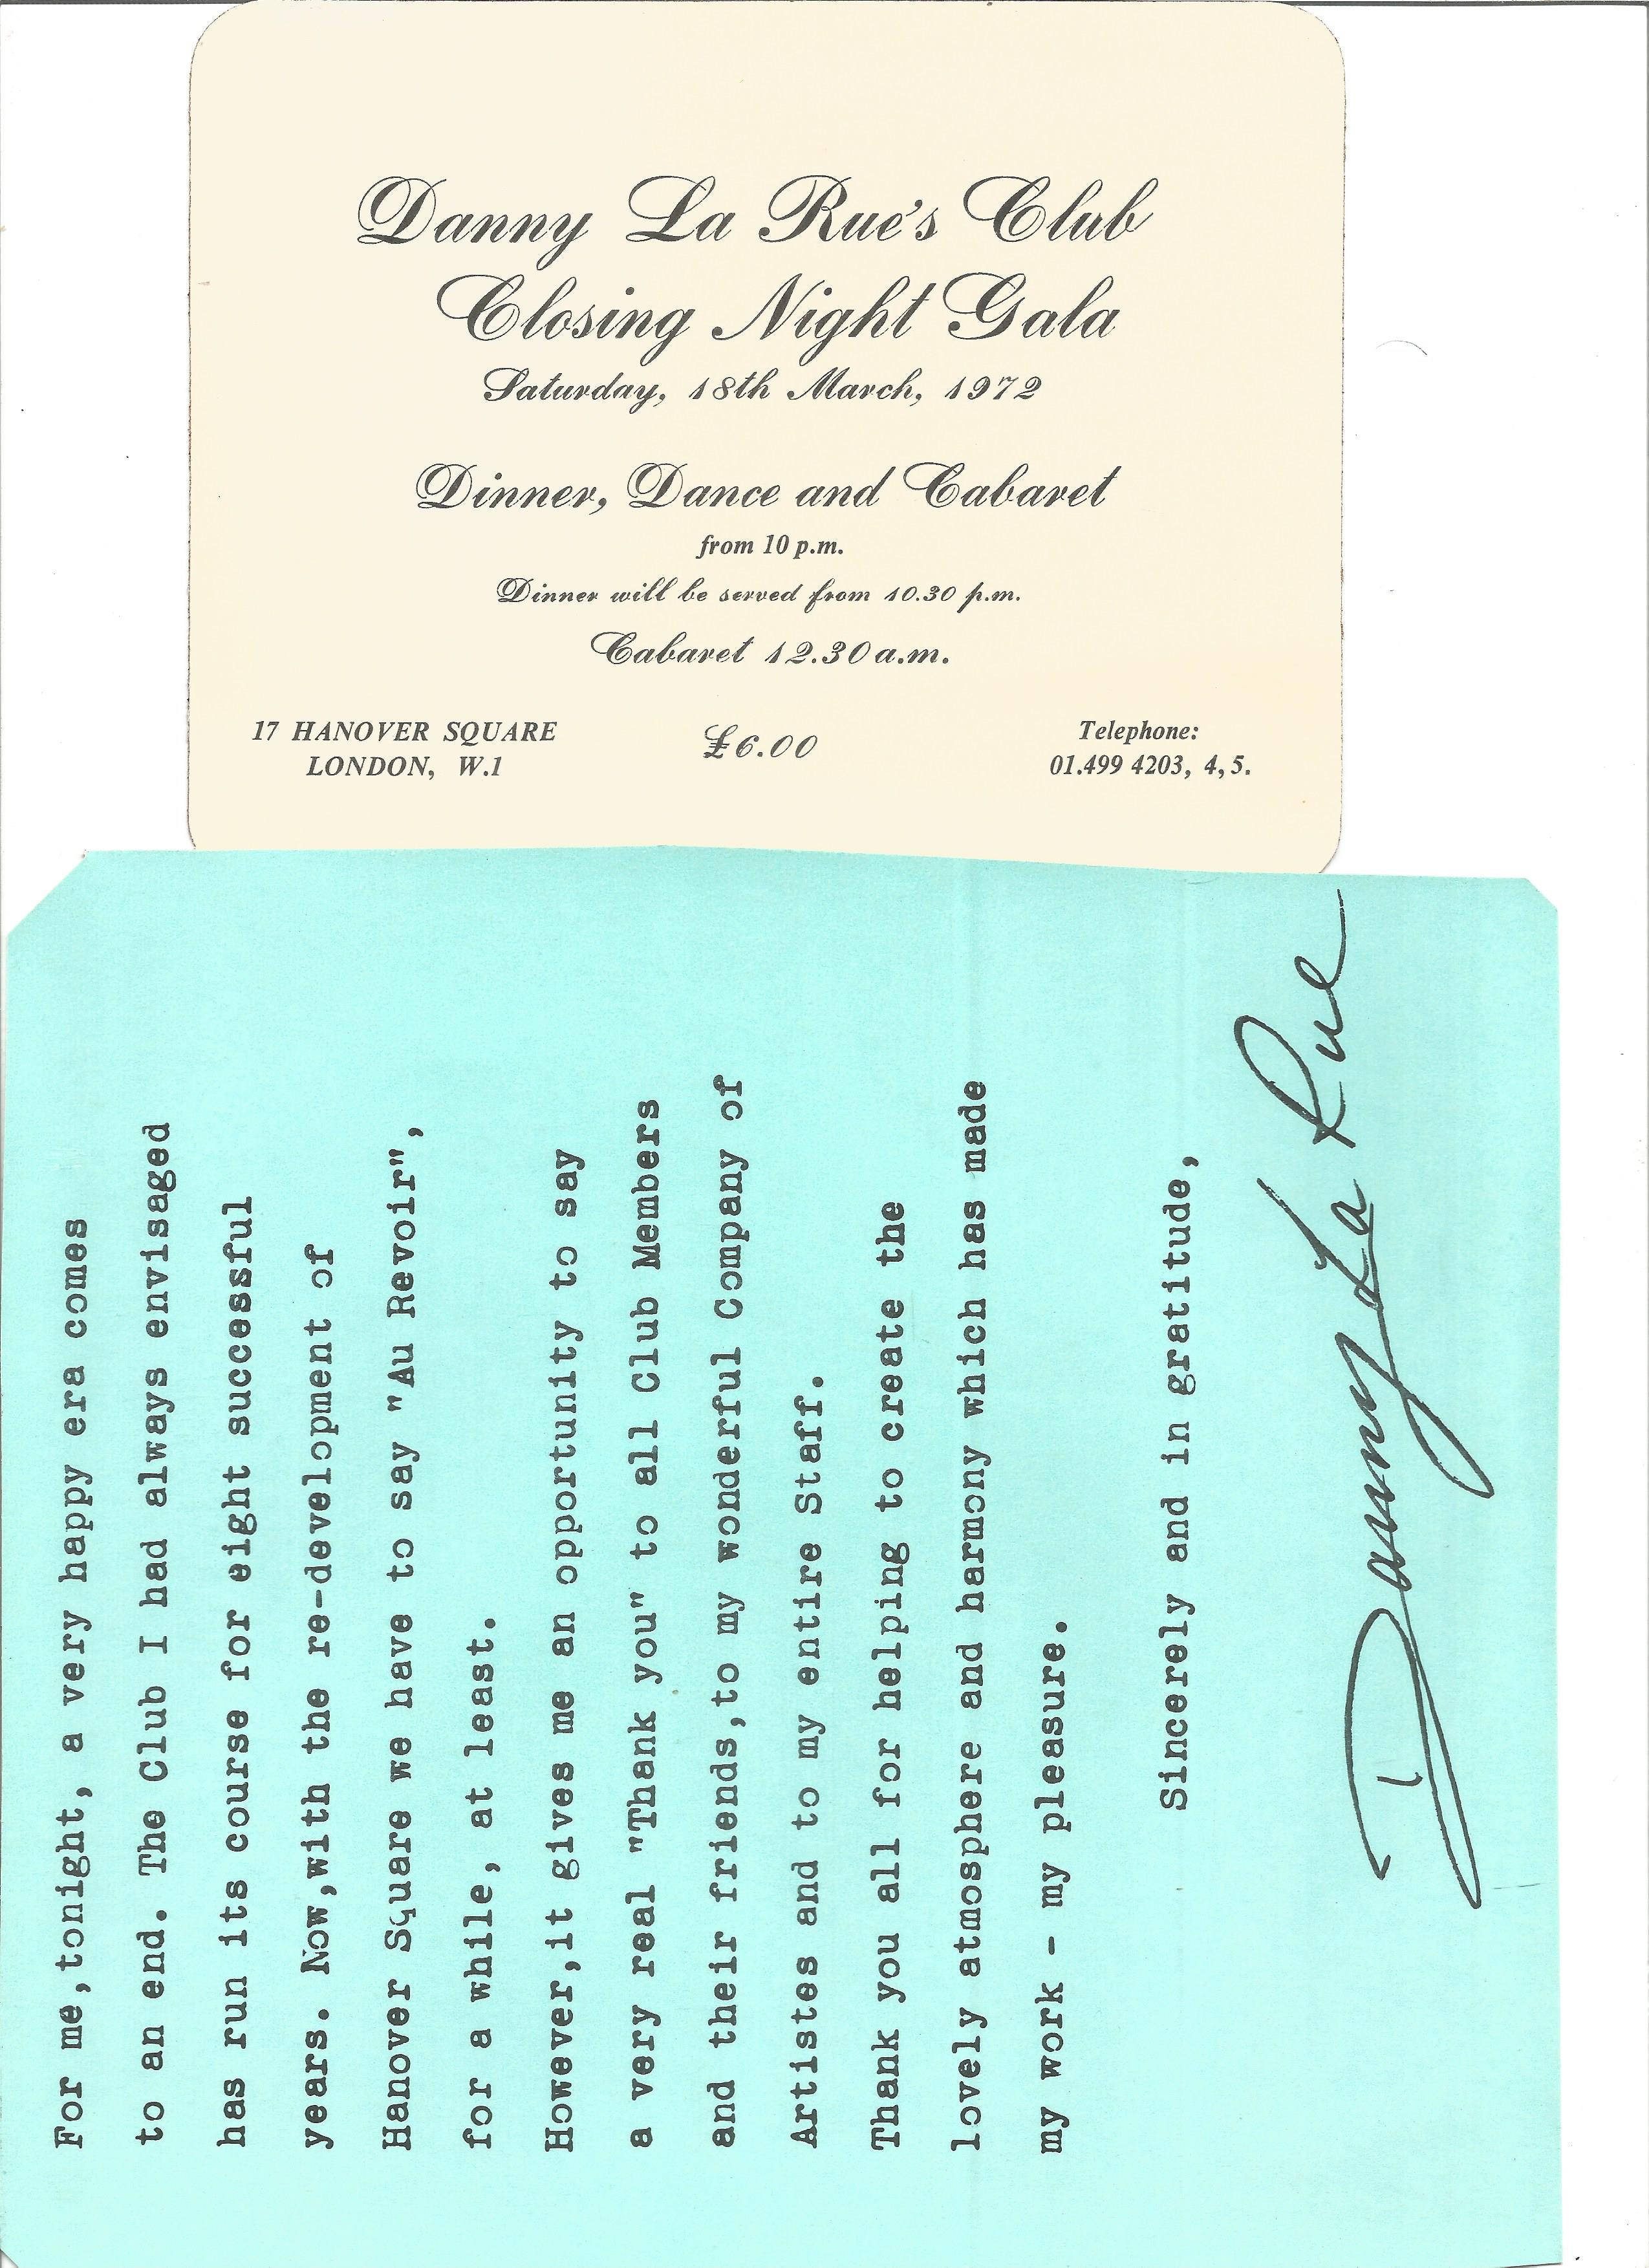 Danny La Rue Nightclub members ticket, menu and note from the last opening night of the club. - Image 2 of 2